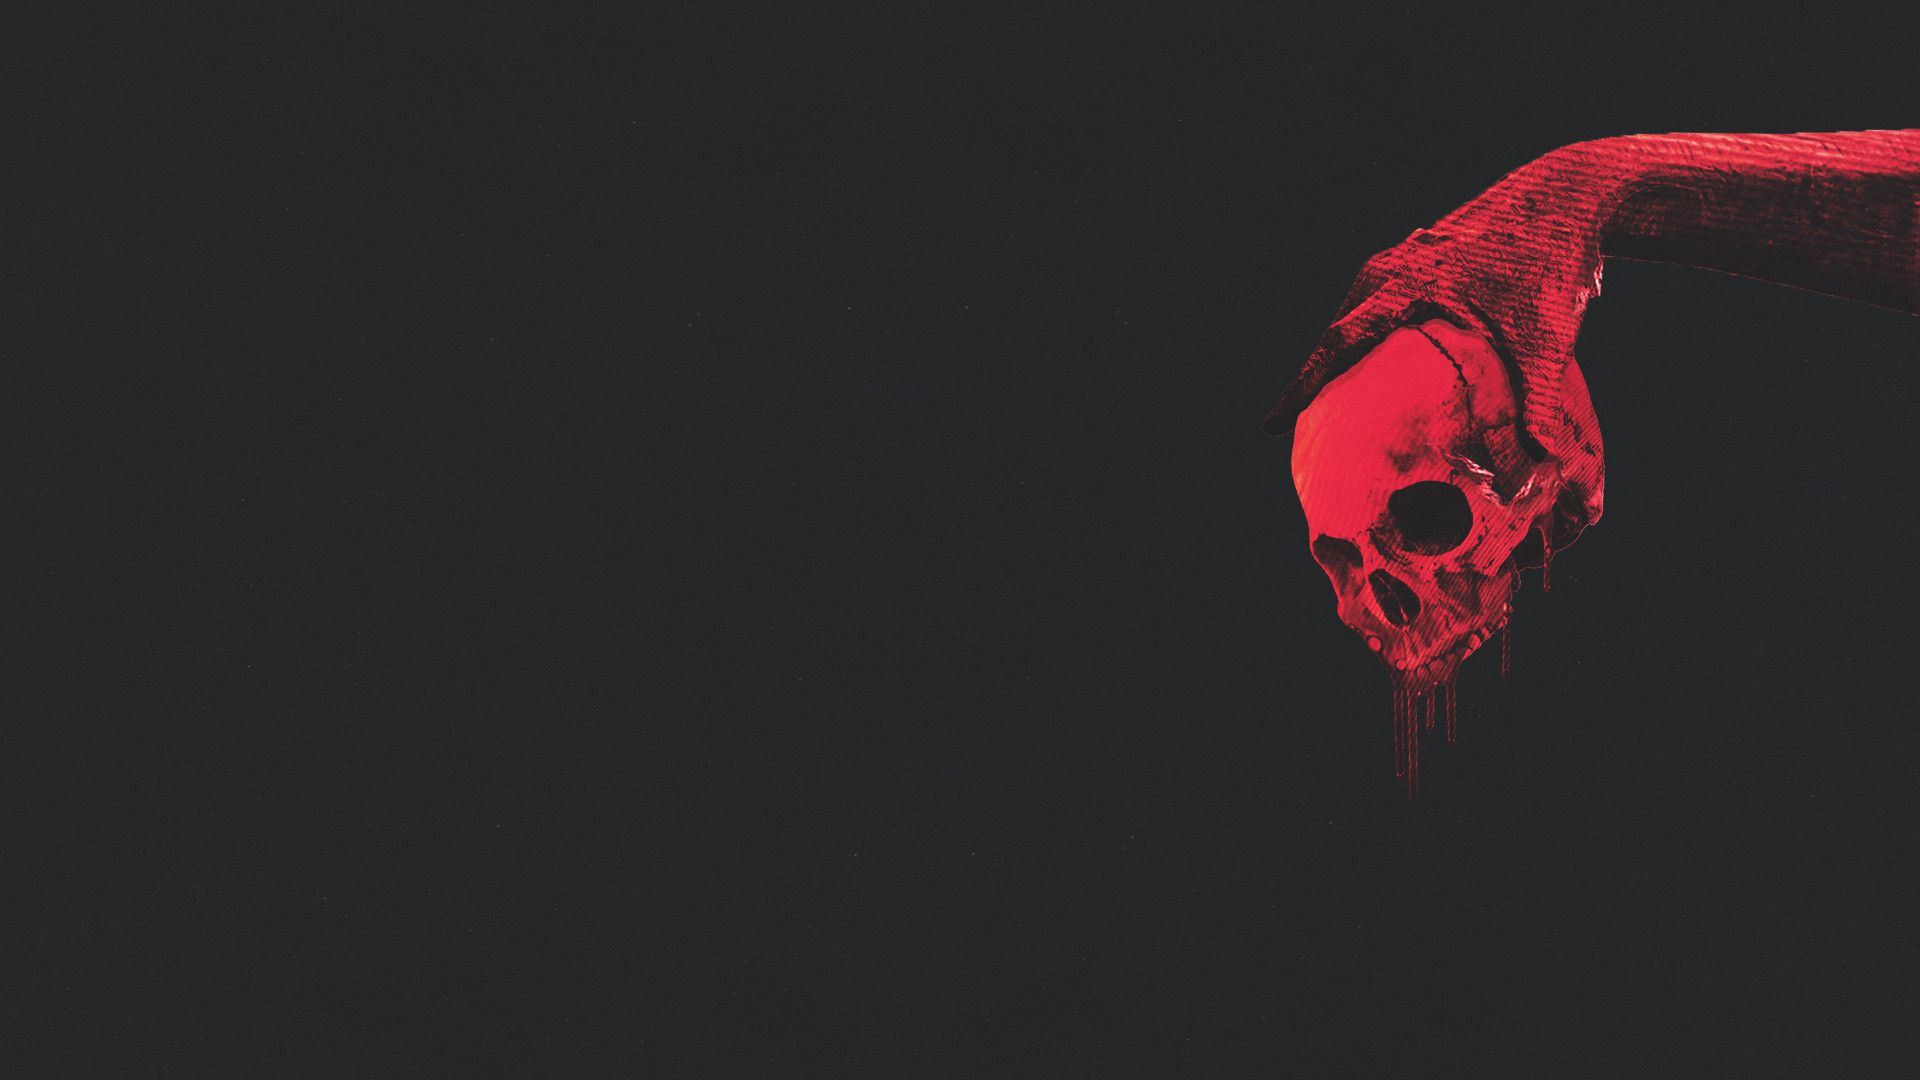 Red Skull Wallpapers - Top Free Red